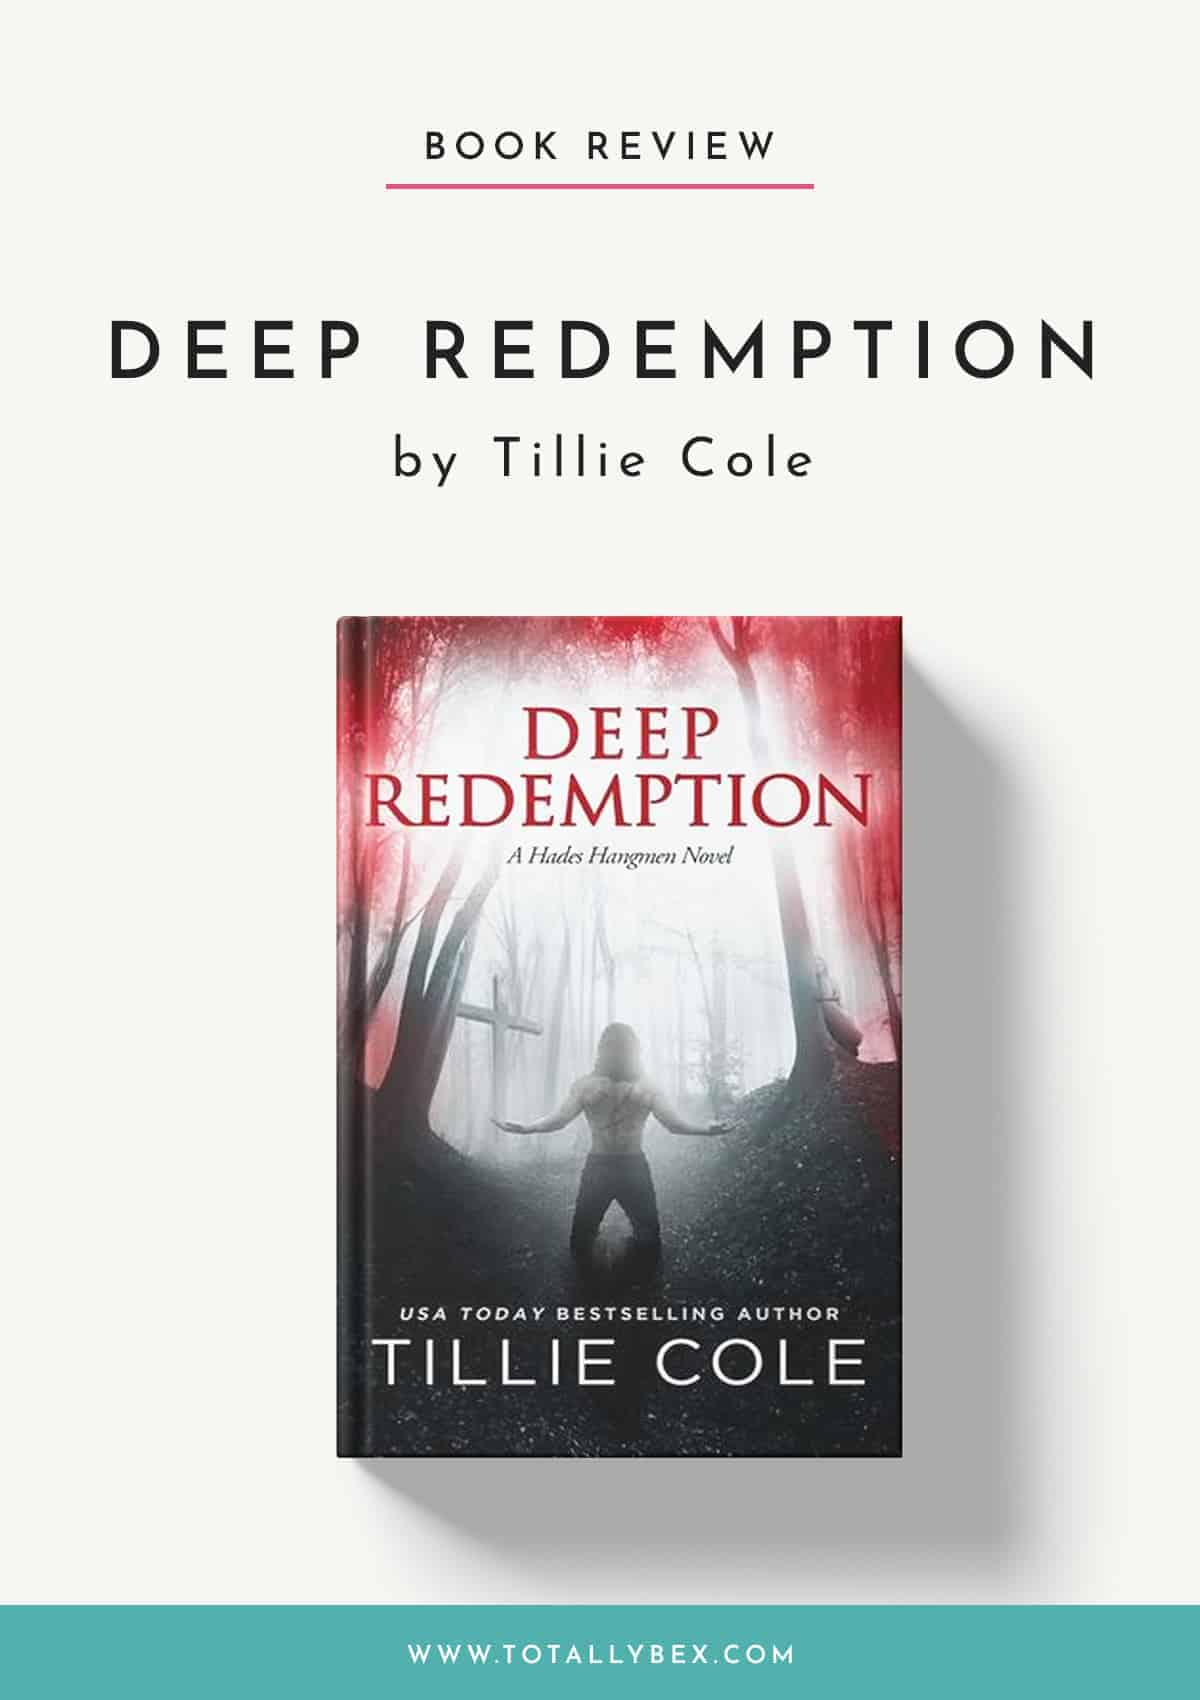 Deep Redemption by Tillie Cole-Book Review